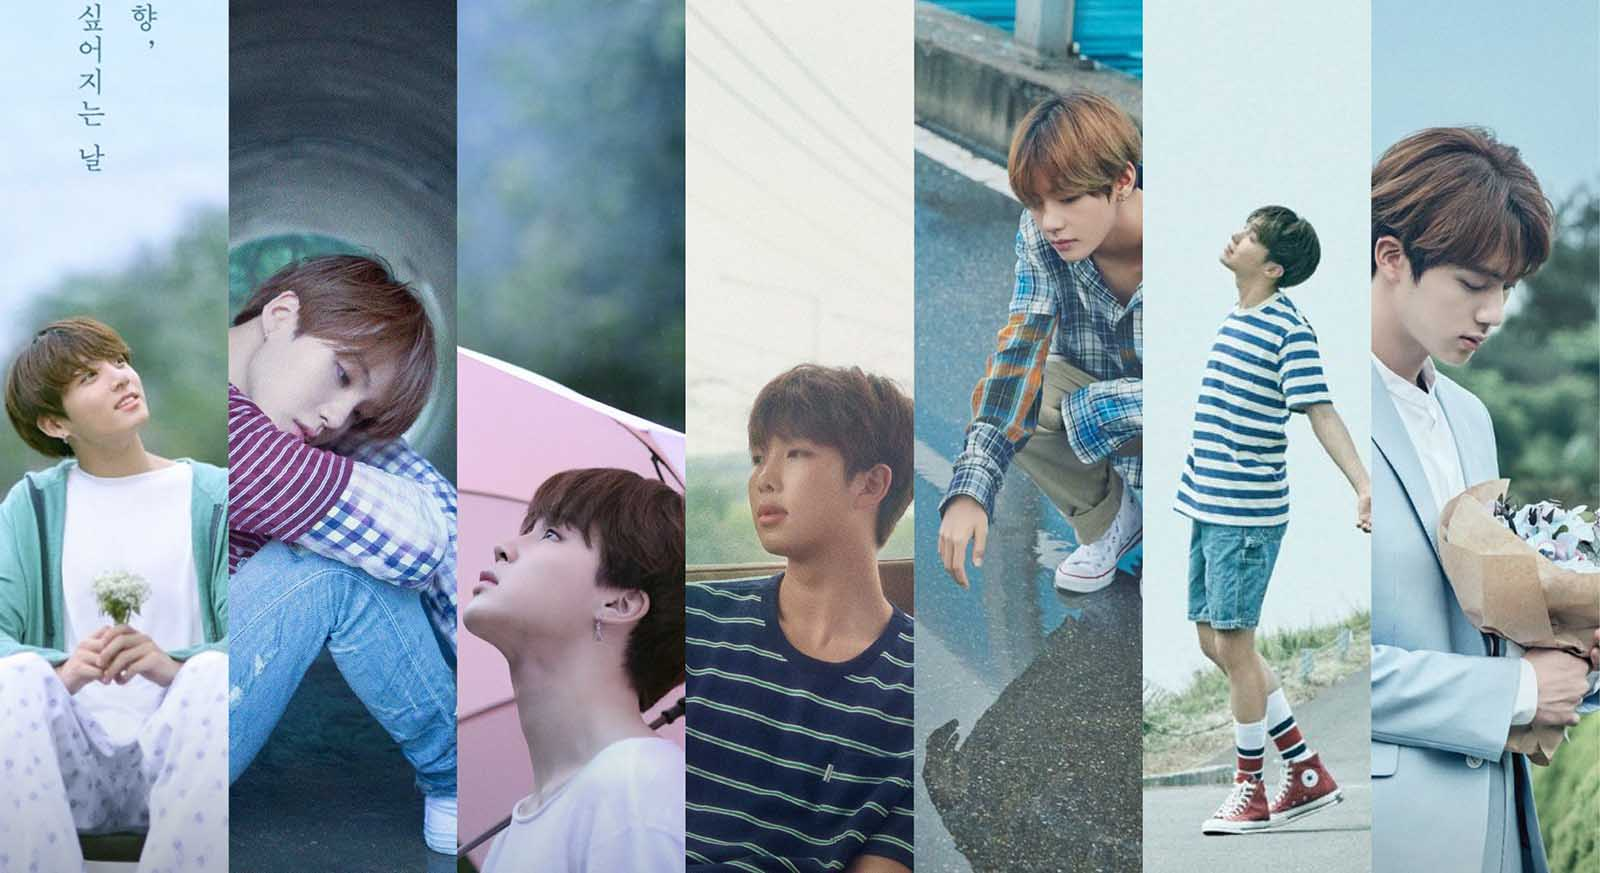 BTS has climbed the charts to become arguably the biggest musical act in the world, and part of that is thanks to the success of the 'Love Yourself' era.